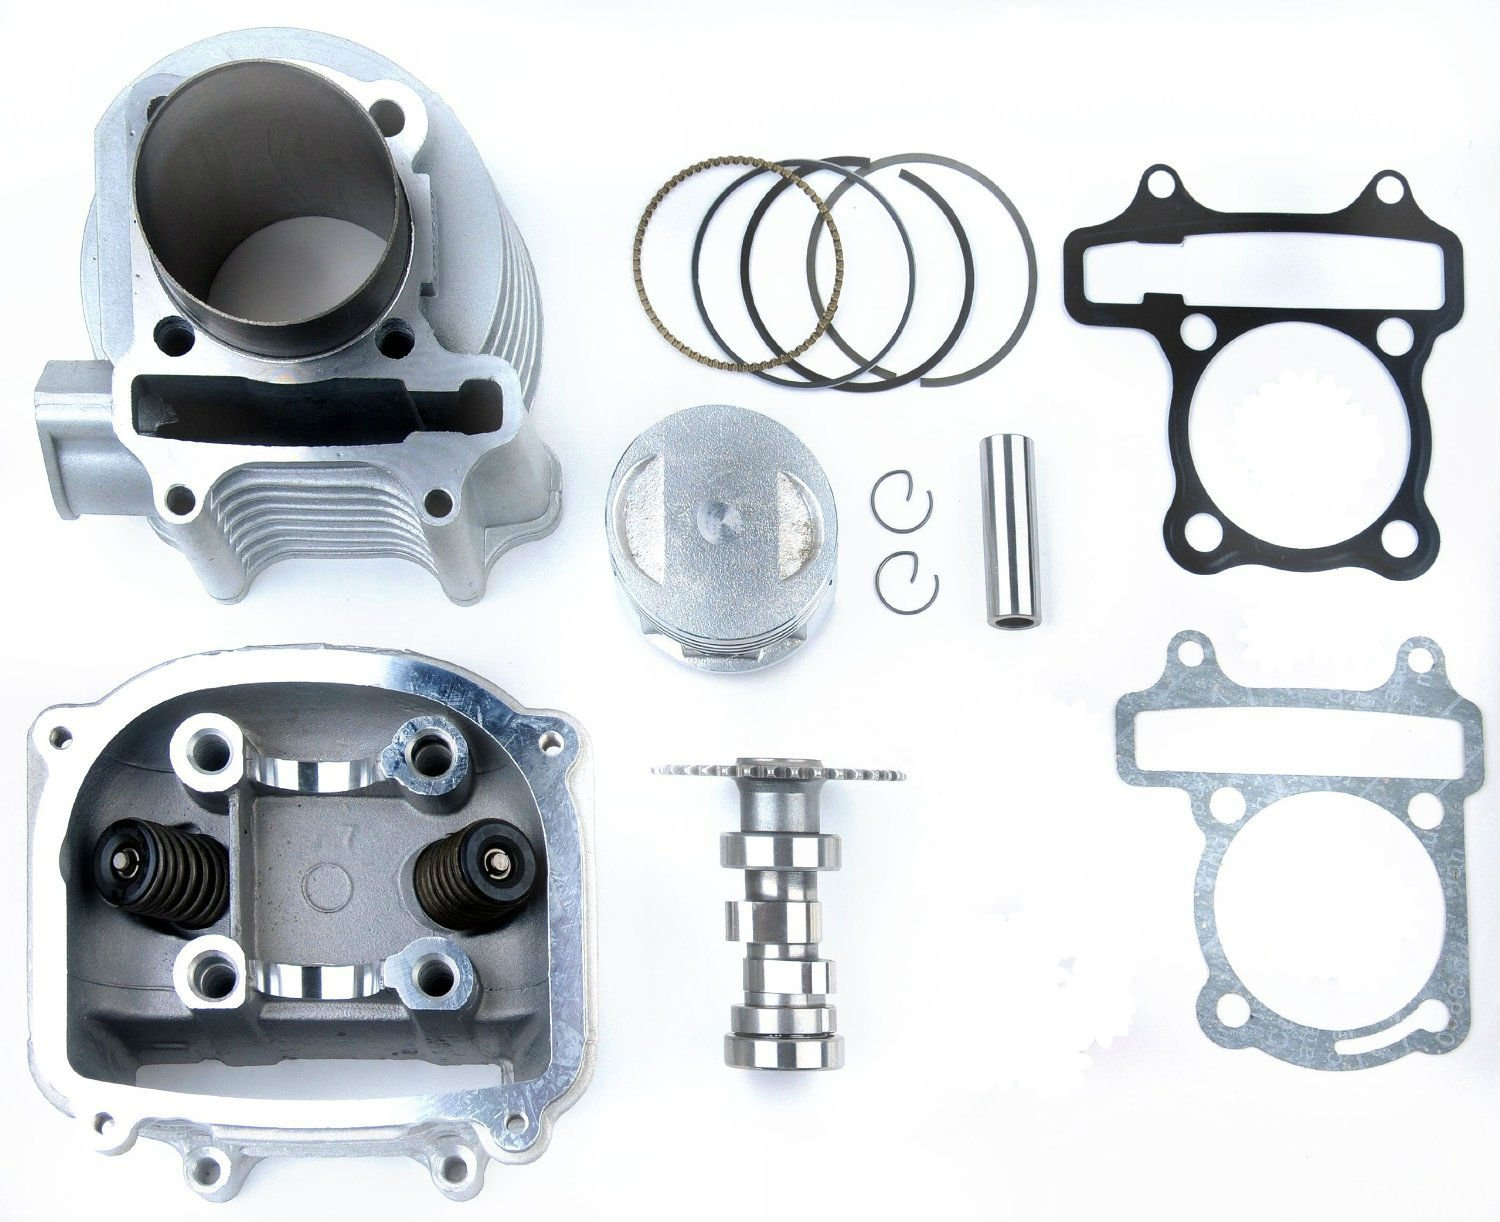 150cc to 170cc Gy6 Scooter Big Bore Kit including performance cam Scooter-ATV Parts